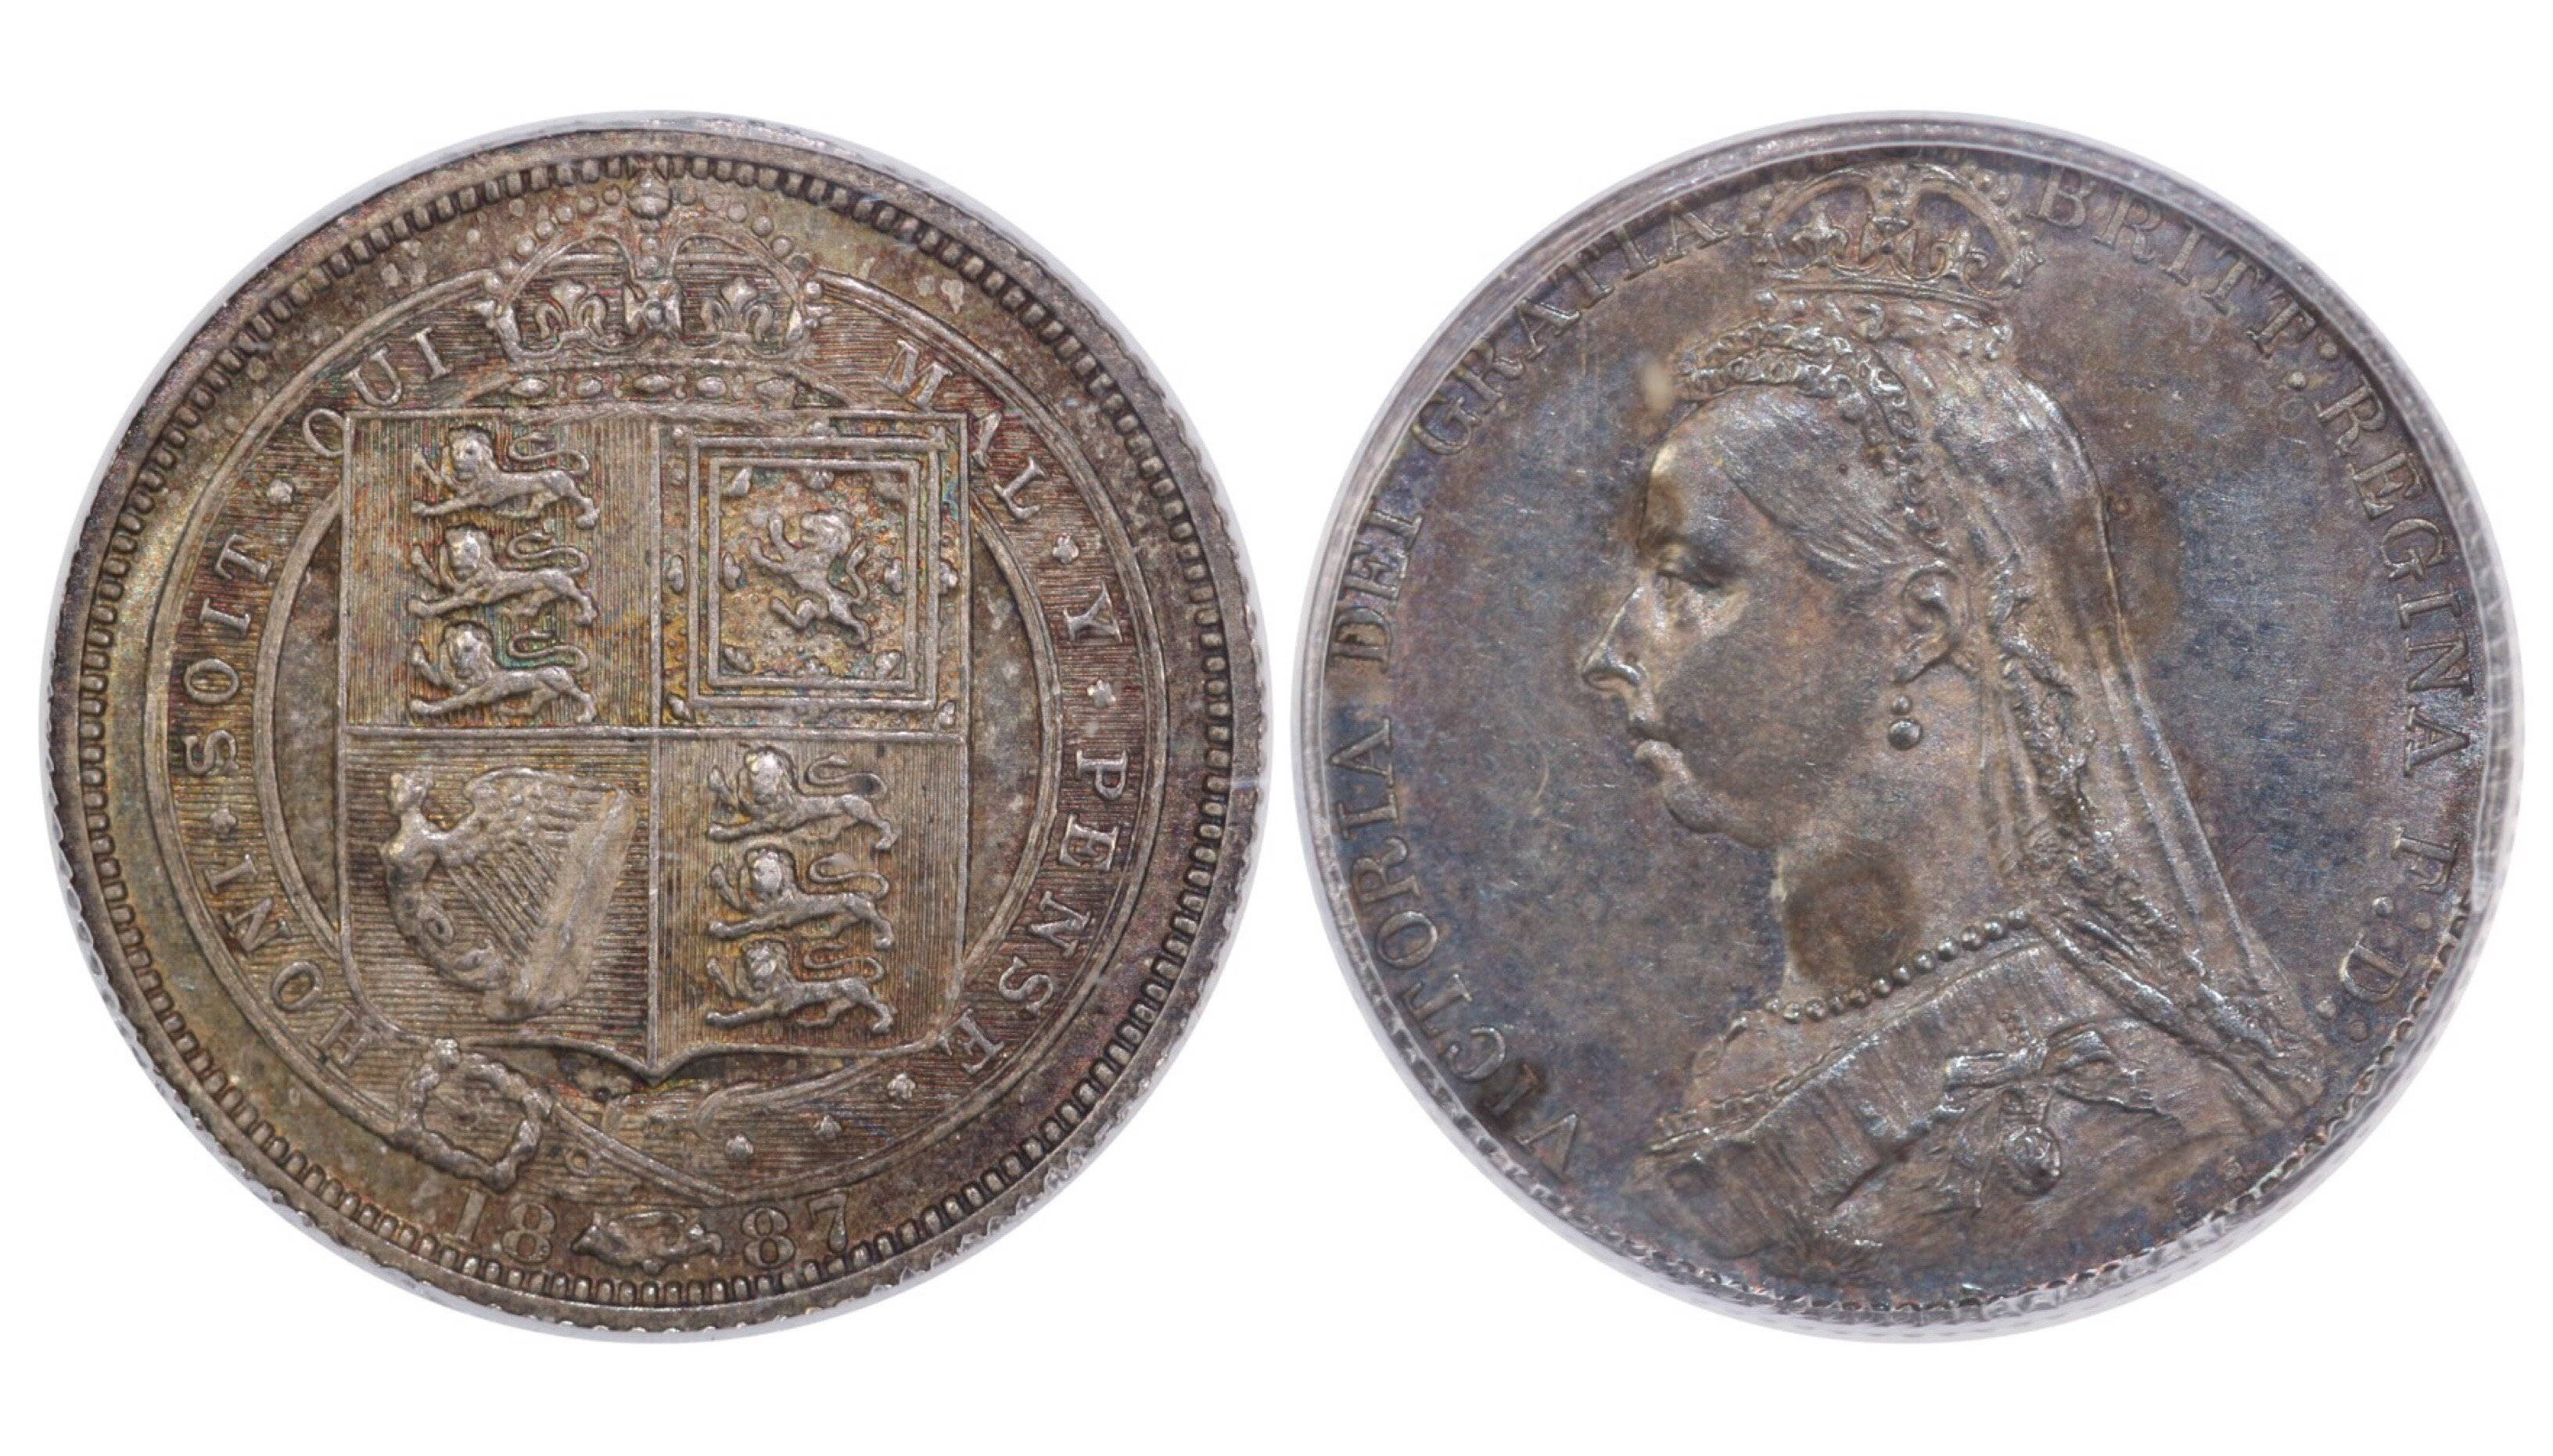 1887 Sixpence, CGS 75, Withdrawn type, Victoria, ESC 1752, UIN 22810